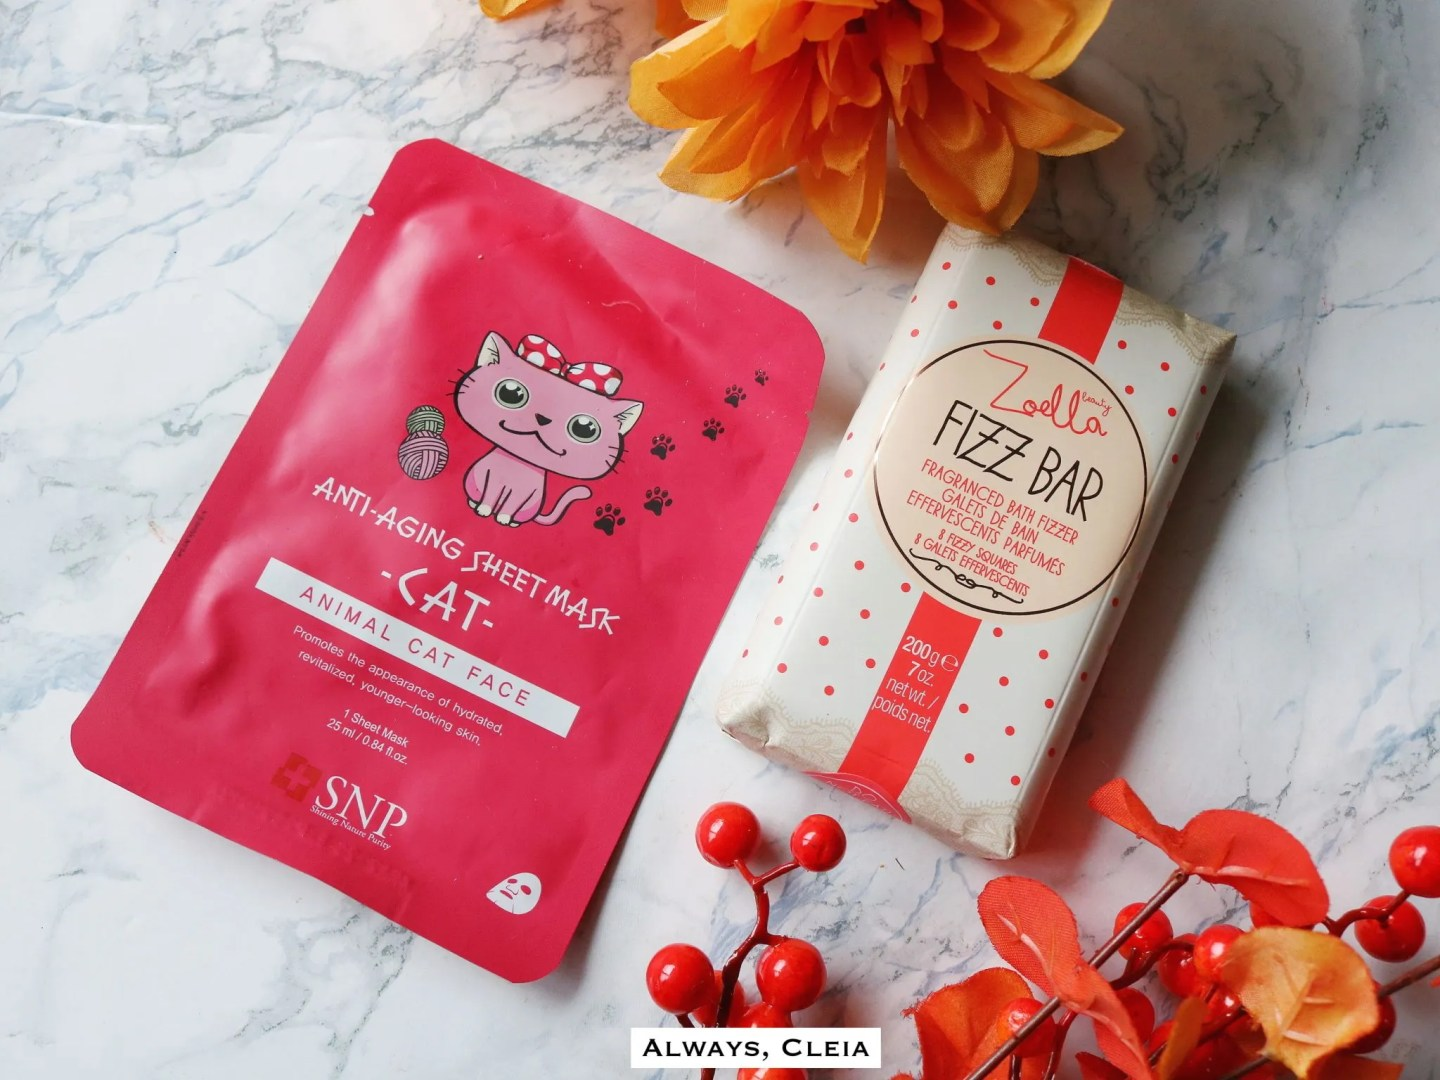 Ulta Haul Sheet Masks & Zoella